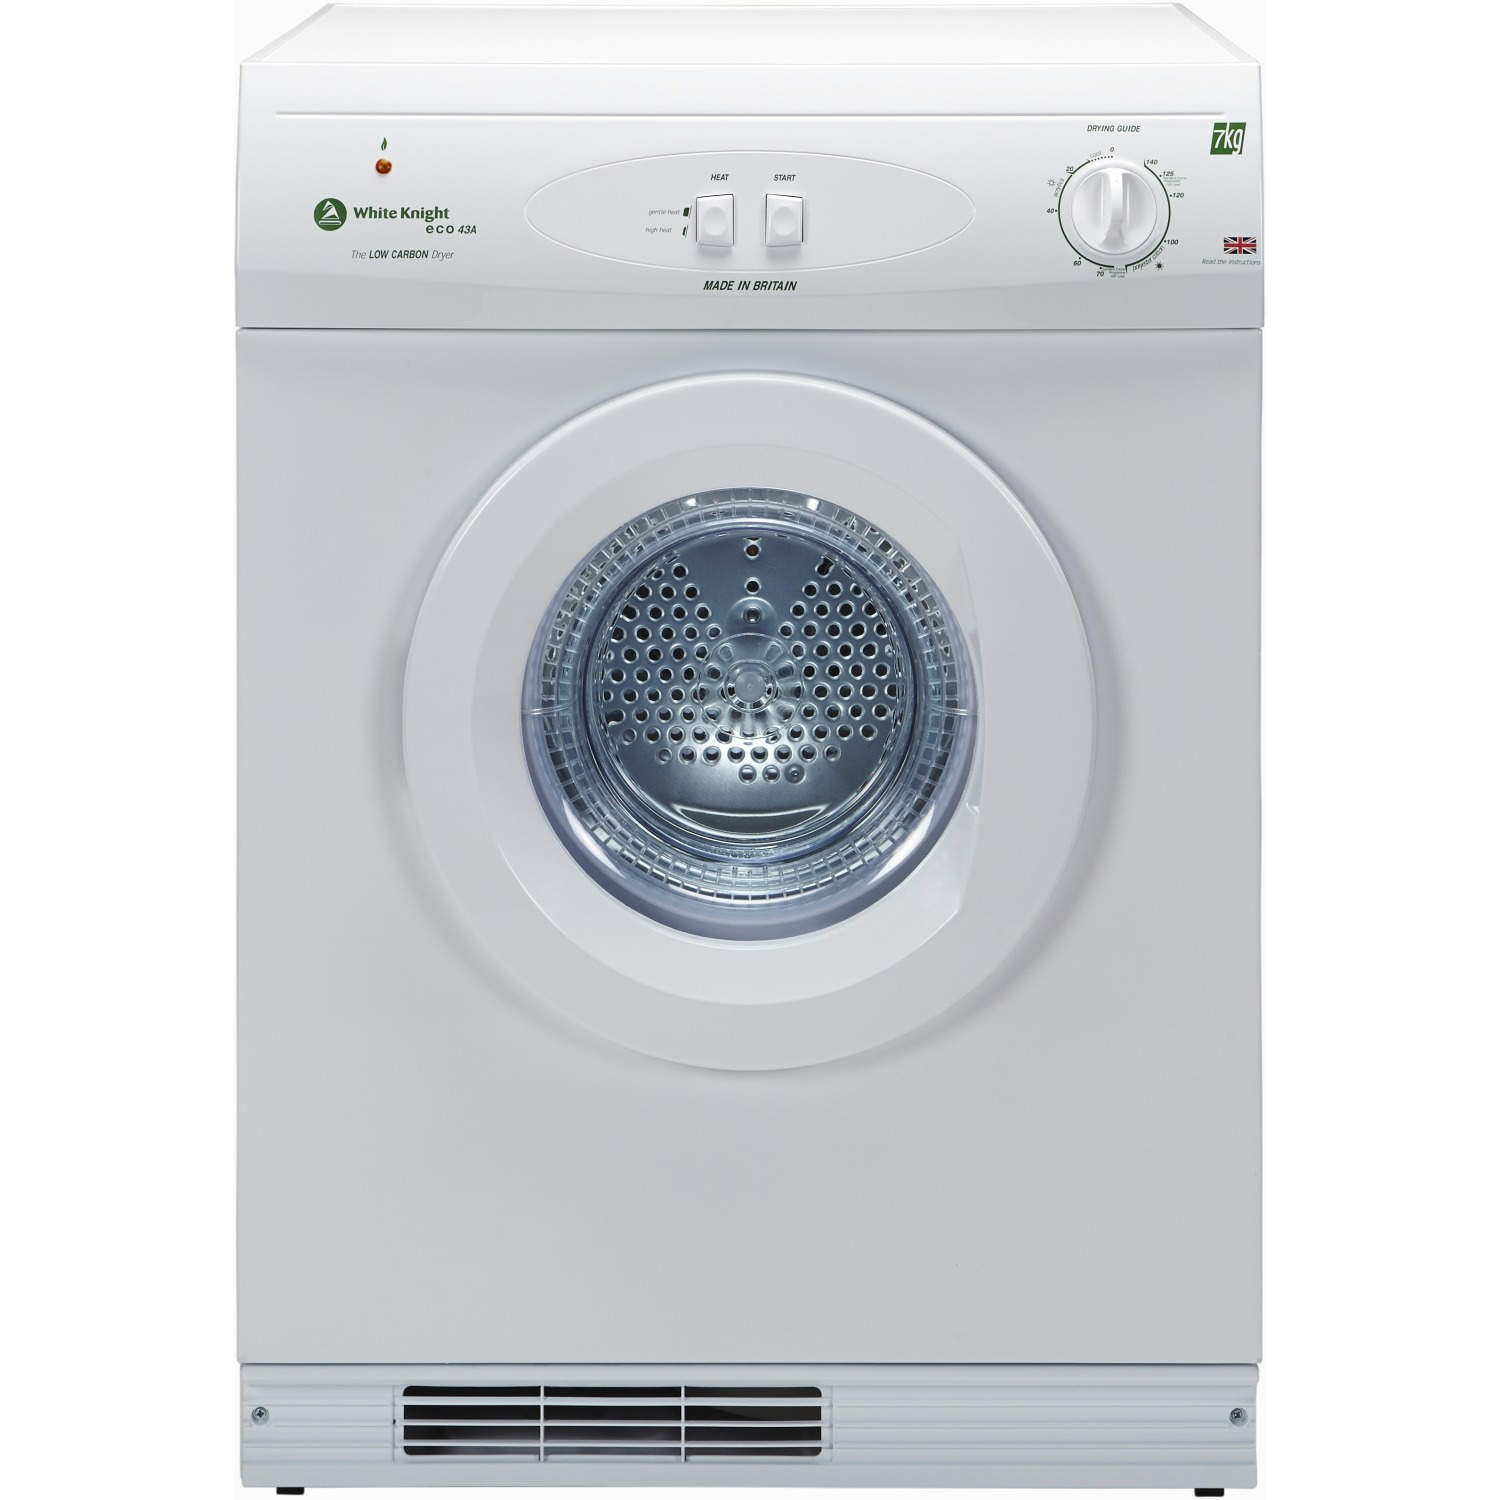 White Knight ECO43AW 7Kg Multi-function Reverse-action Freestanding Vented Gas Tumble Dryer - White   Appliances Direct